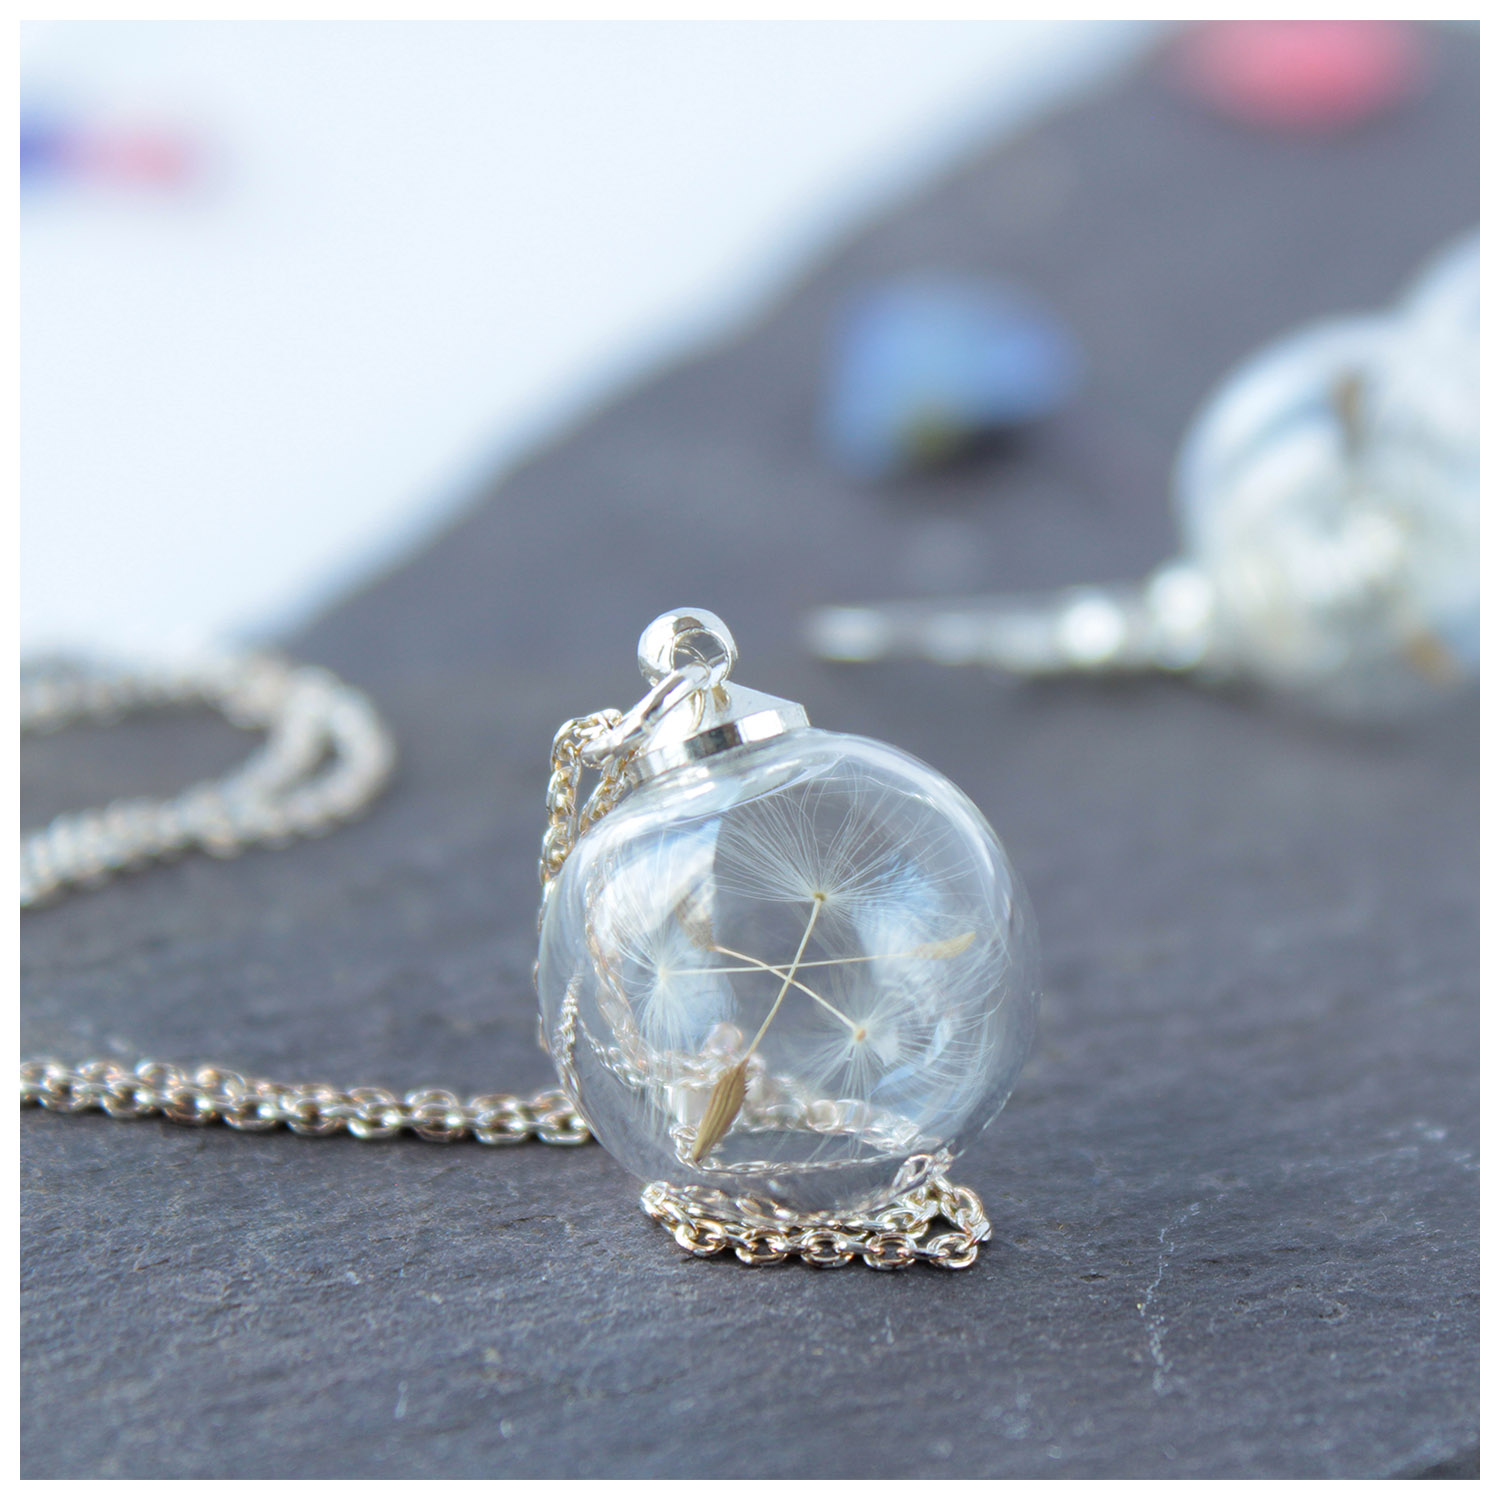 Lizzy Chambers Mini Glass Dandelion Necklace Sterling Silver 16mm diameter with 18 inch Sterling Silver Chain